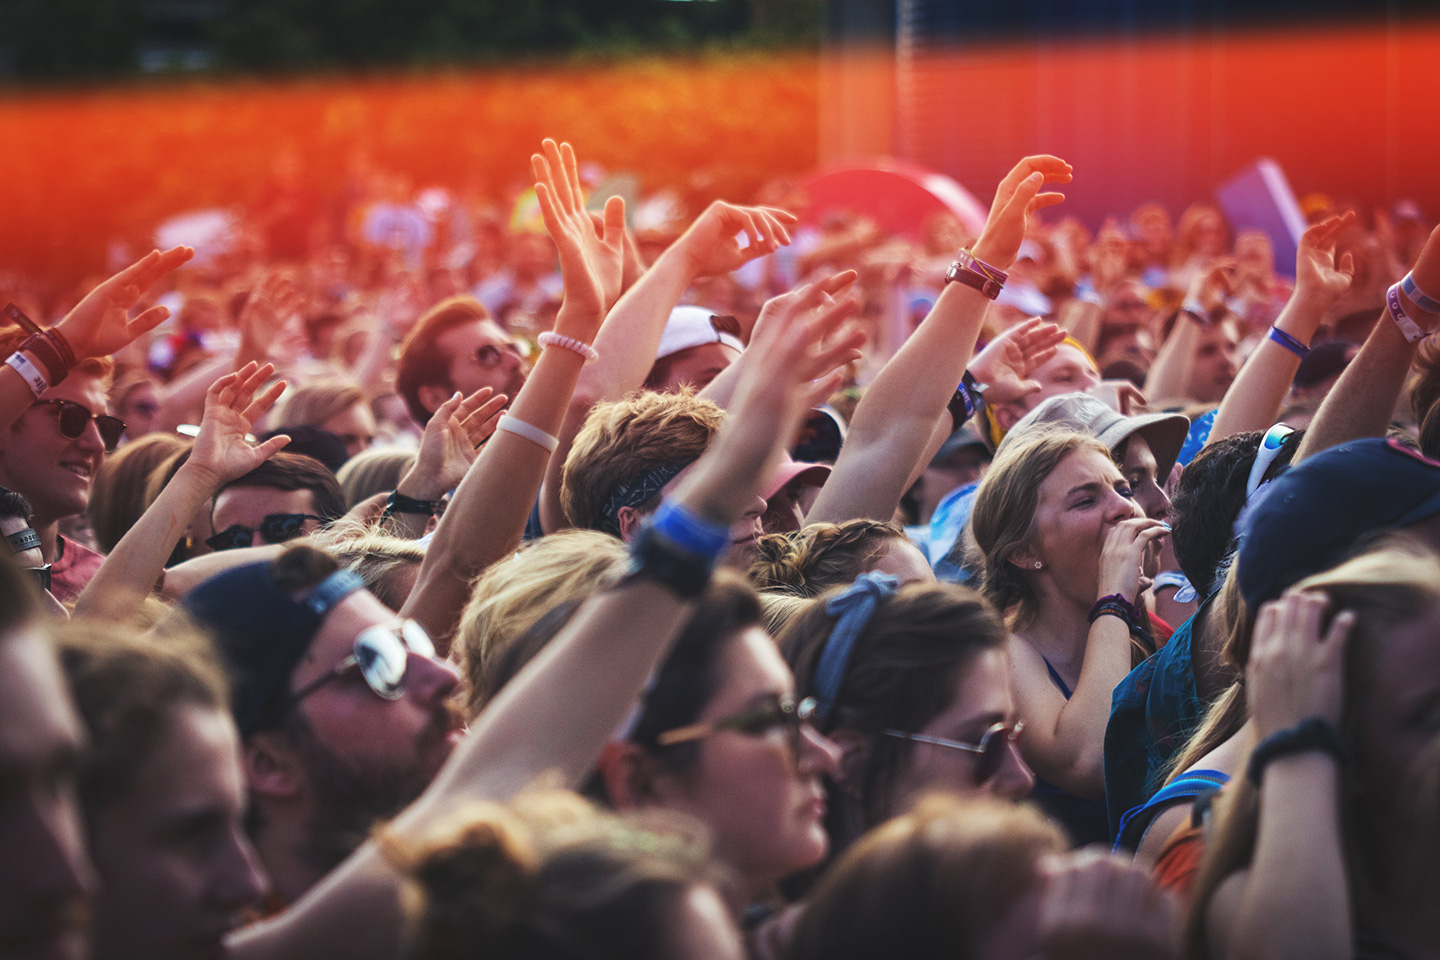 Huge List of Music Festivals - Where To Go Guide For Music 2020